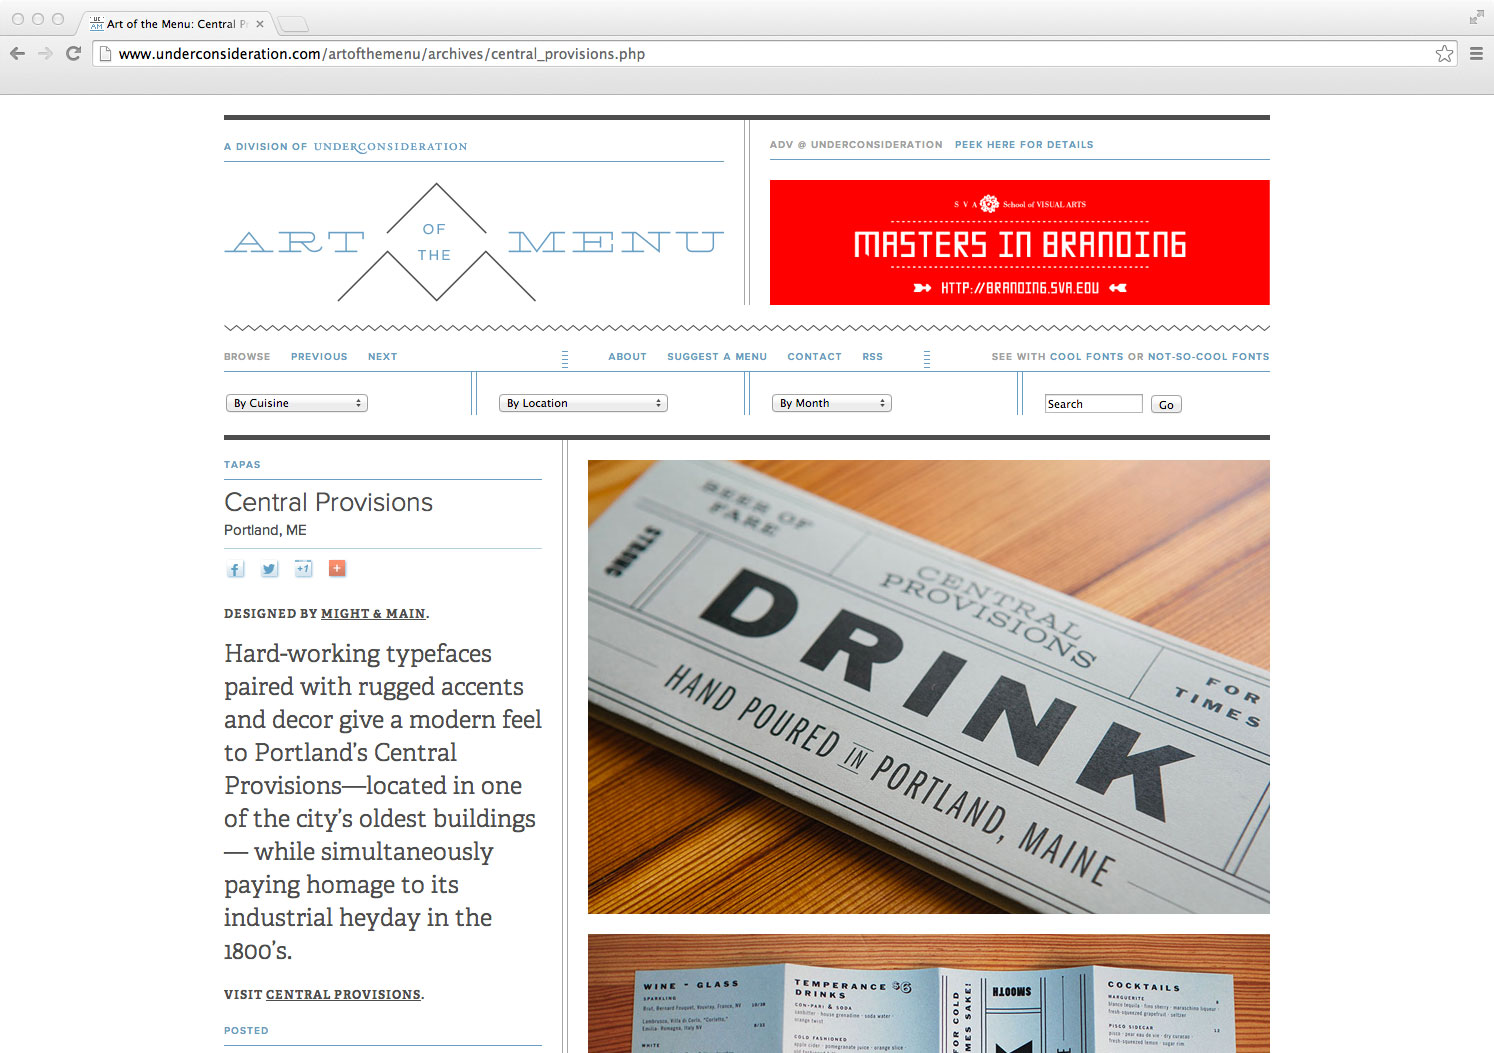 Central Provisions branding and menu design on UnderConsideration's Art of the Menu